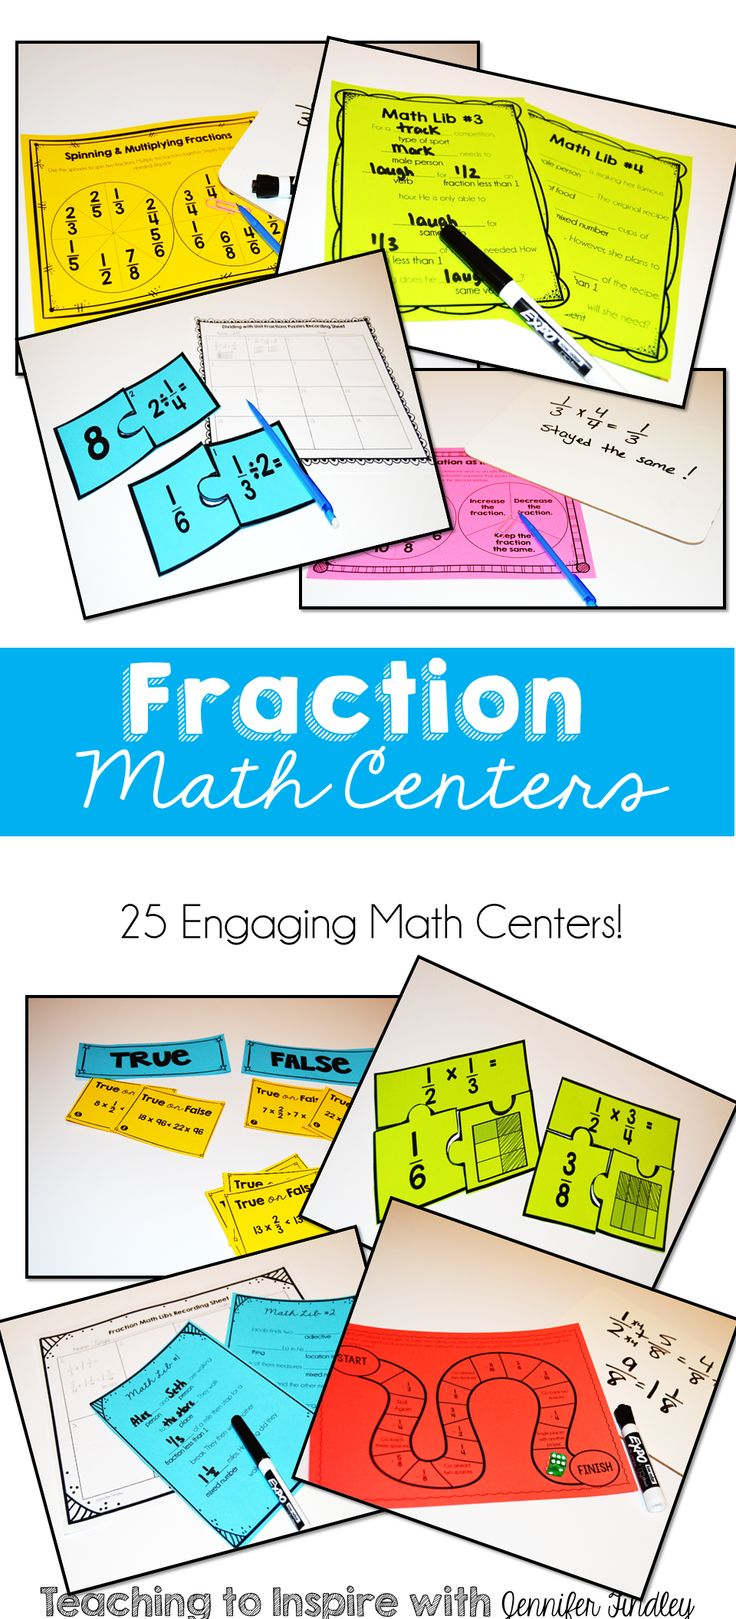 124 best Fractions images on Pinterest | School, Fractions and Learning